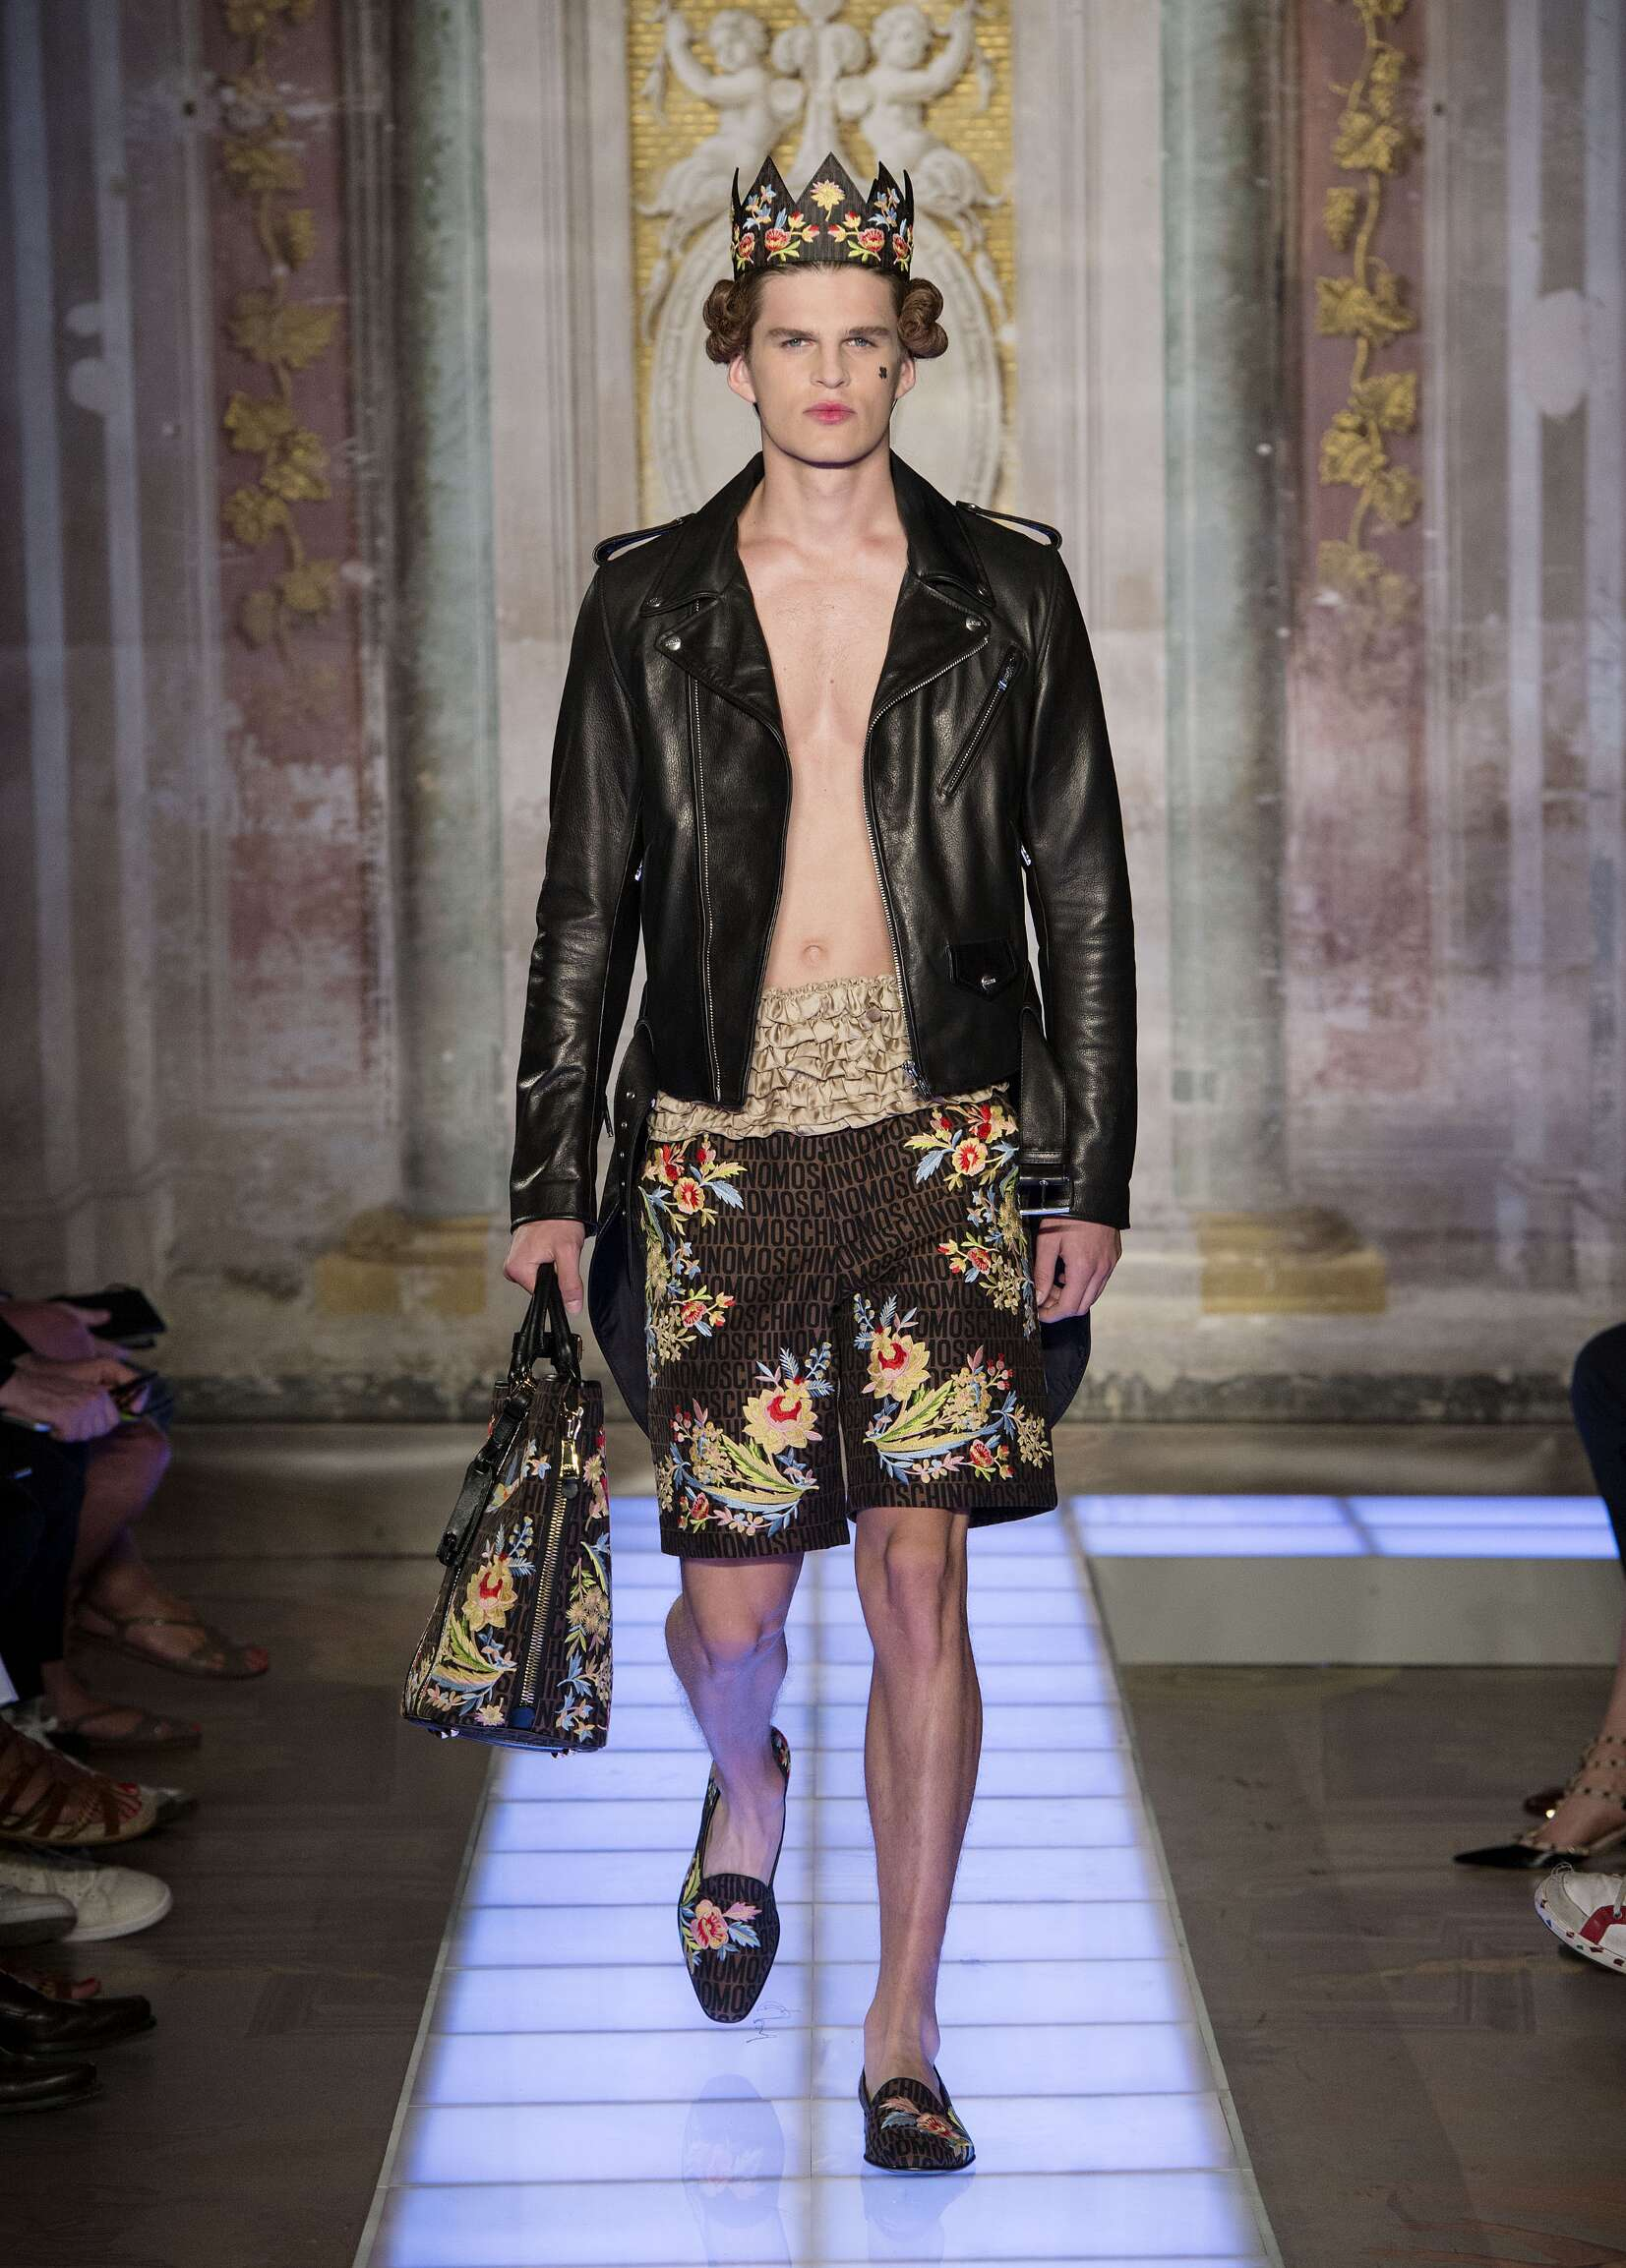 Moschino Collection Pitti Immagine Florence Menswear